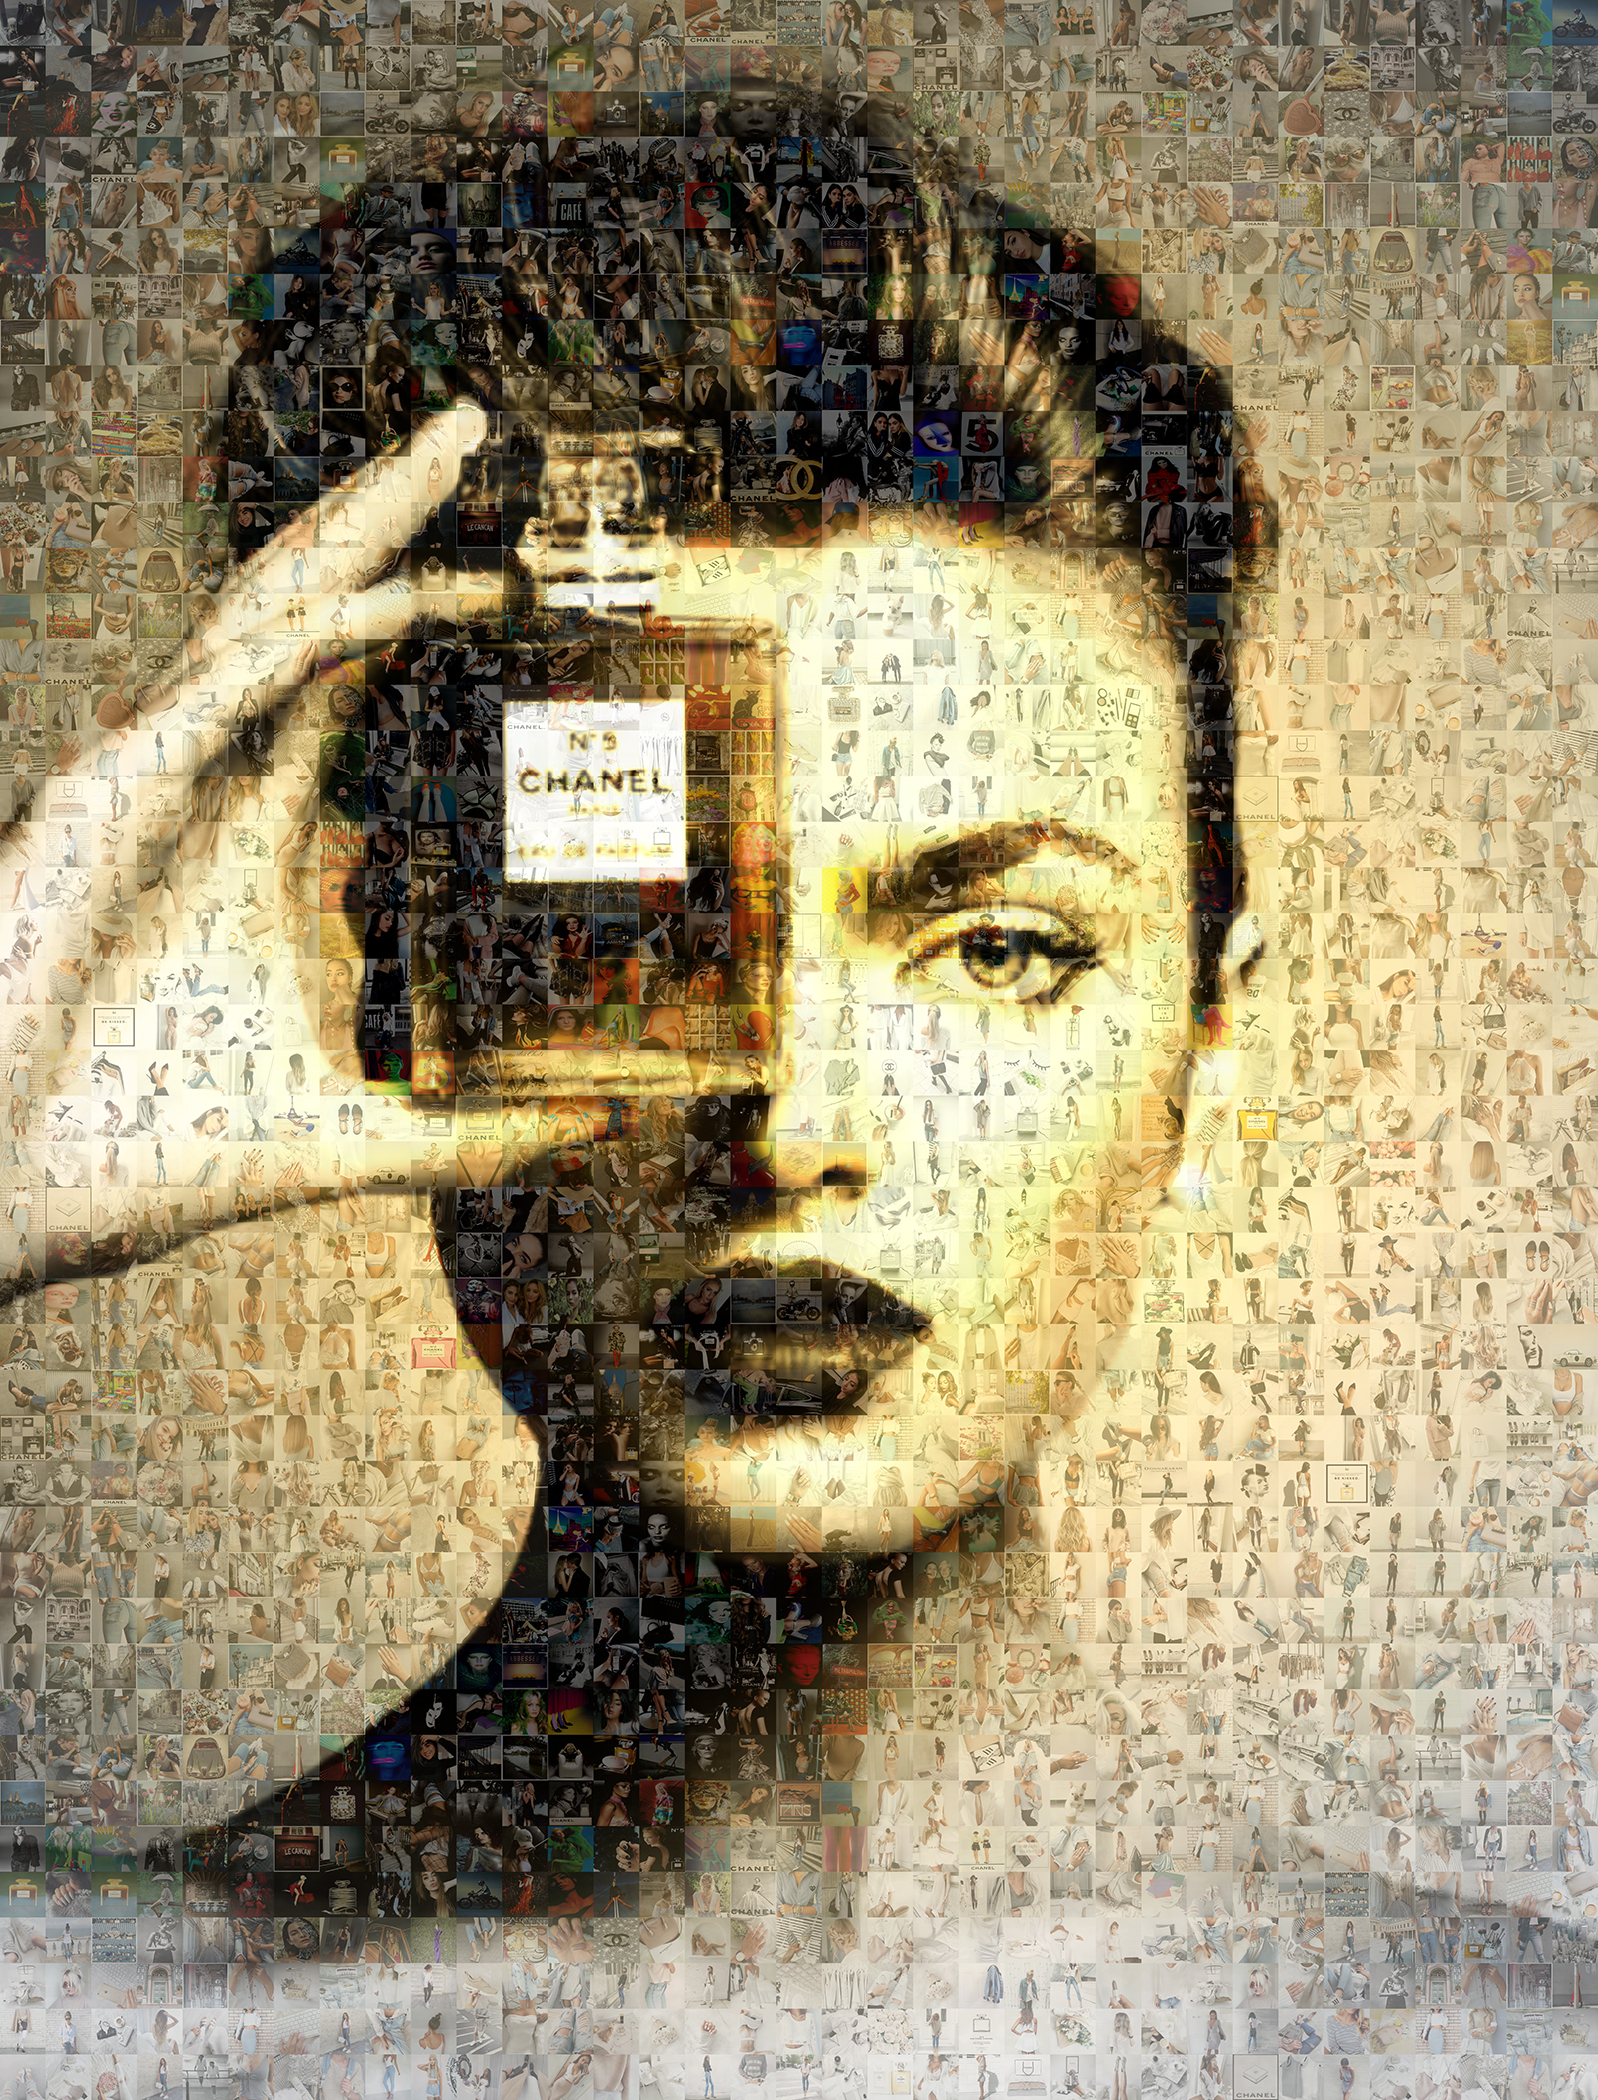 Chanel no 5 - Luxurious Simplicity